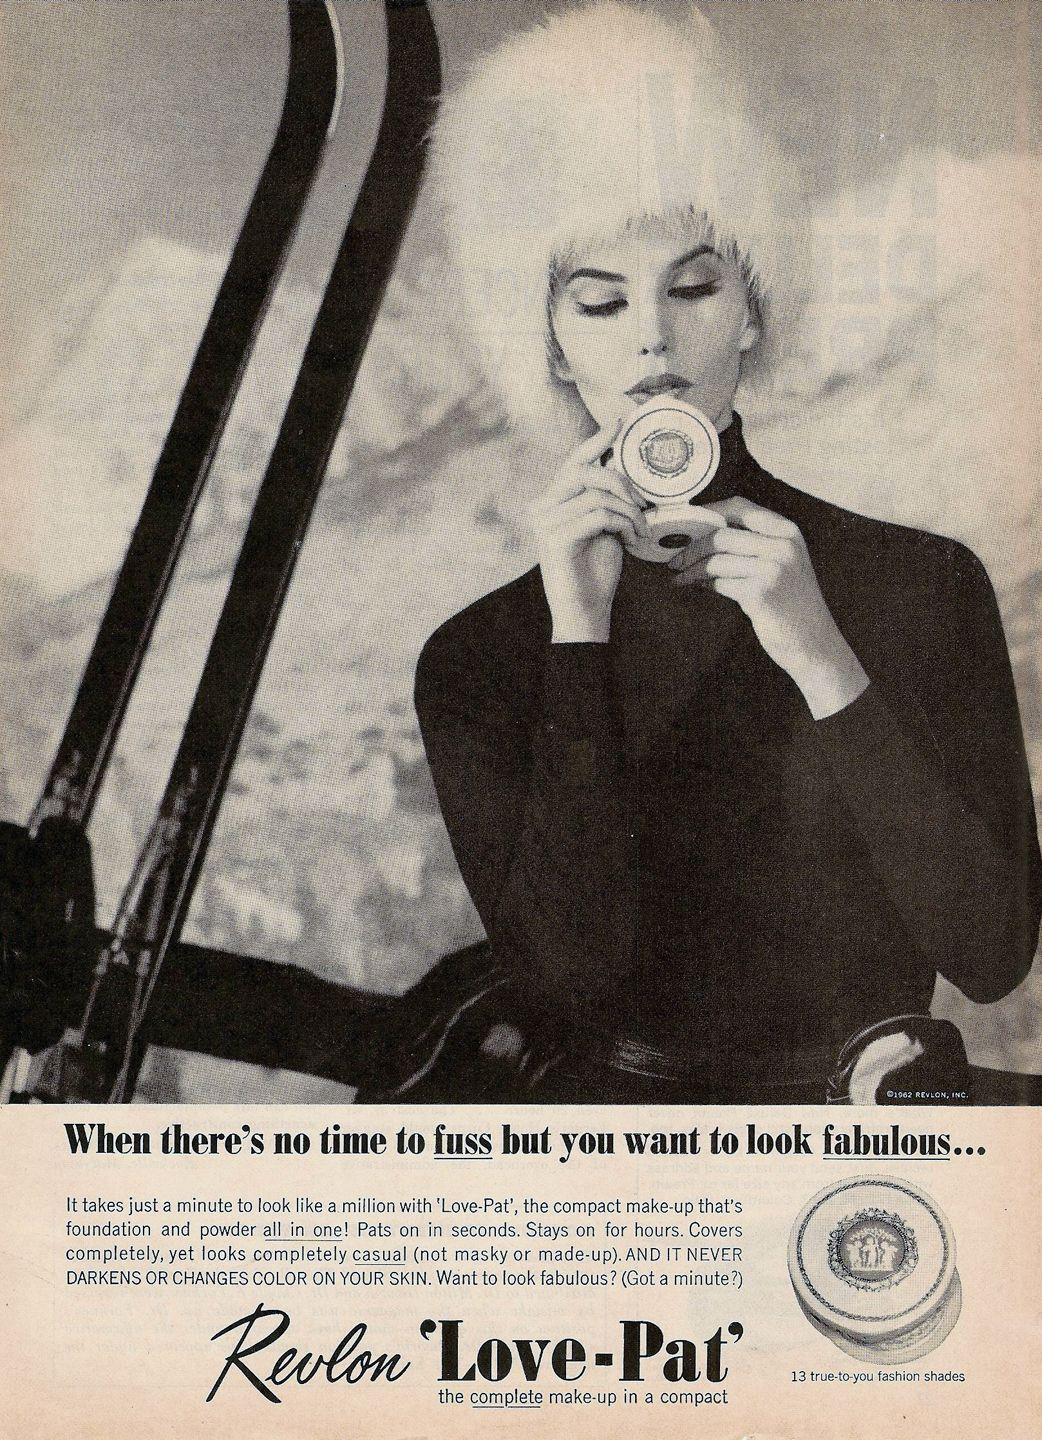 snowbunnychic Doubles as an acceptable glide wax in a pinch. Revlon ad, 1962.